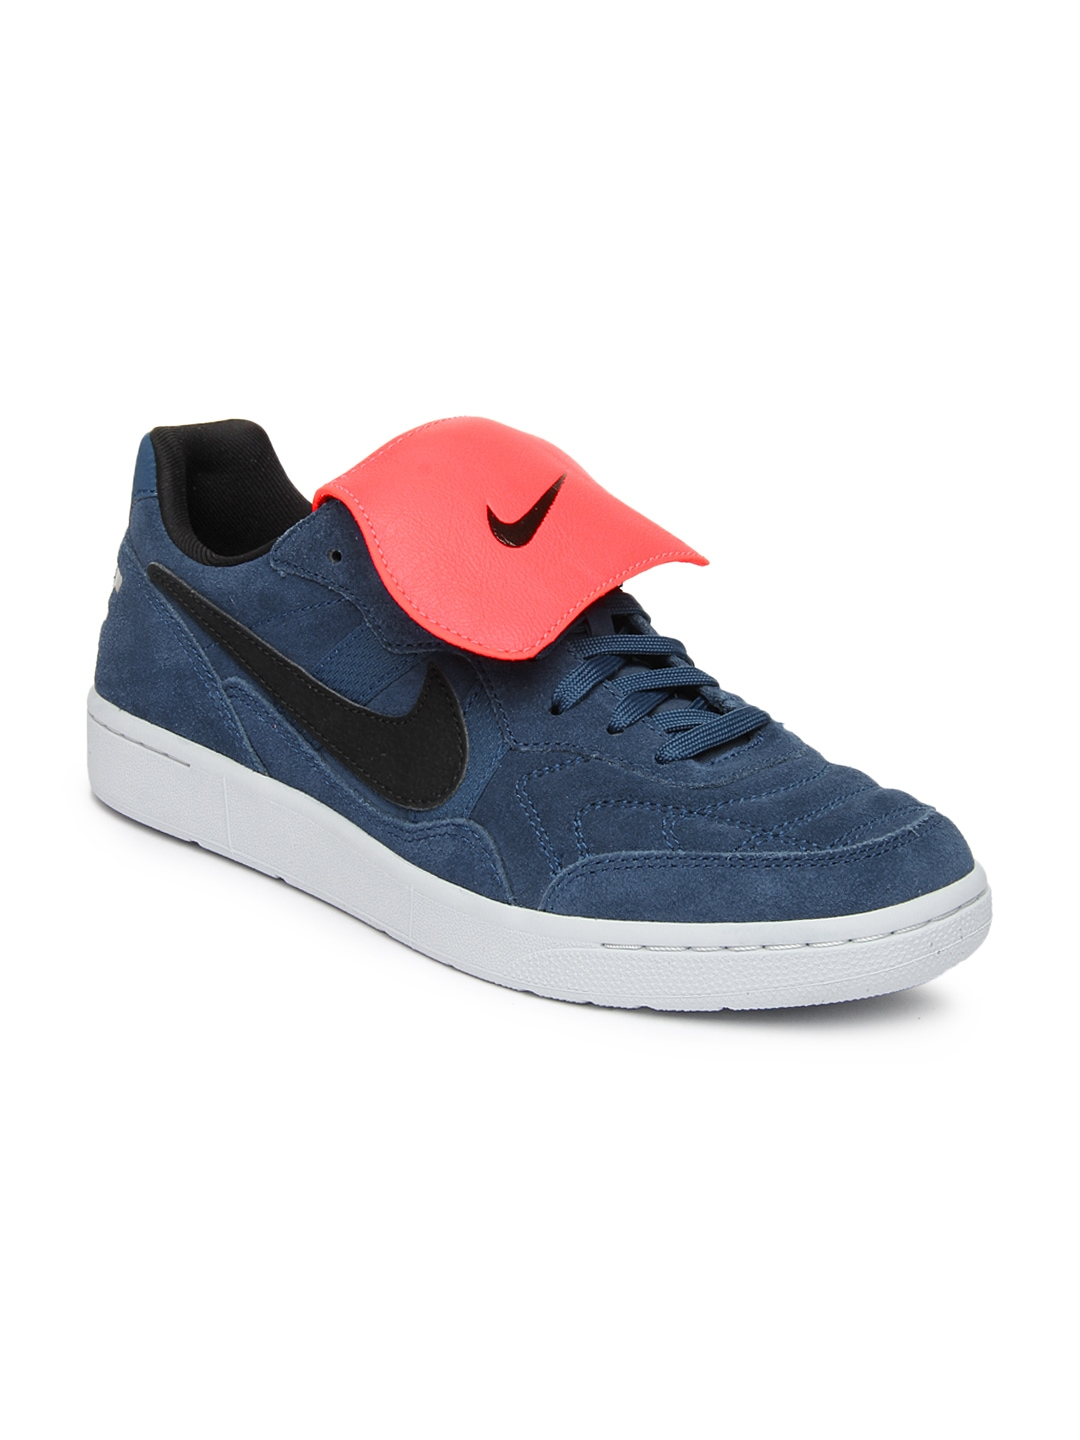 myntra nike blue nsw tiempo 94 casual shoes 613055